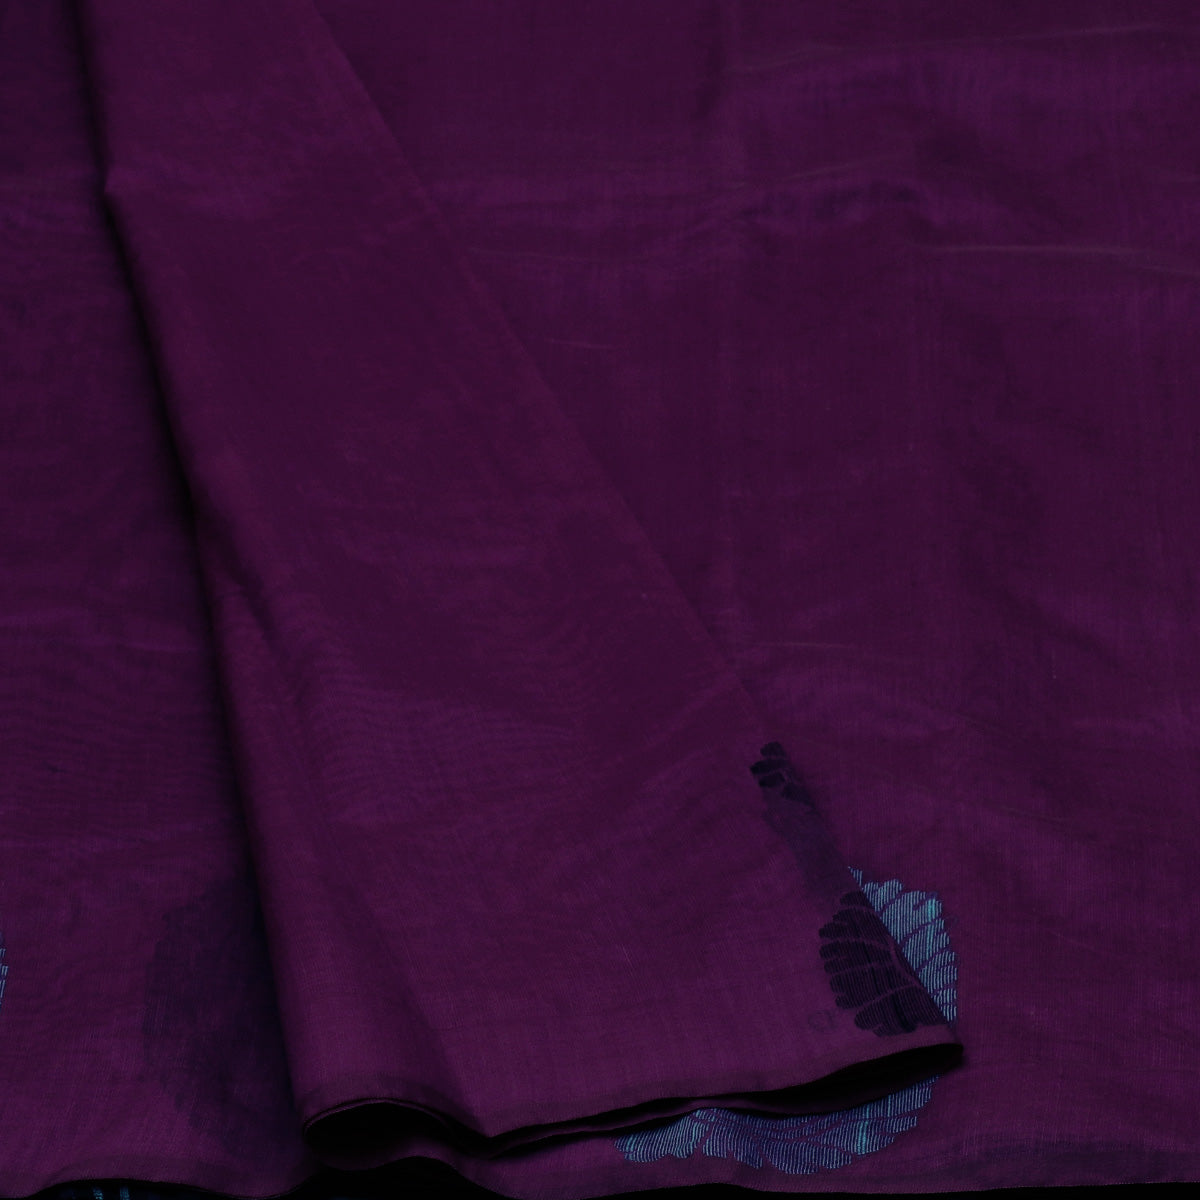 Kora Silk Saree Violet and Black with Simple Border